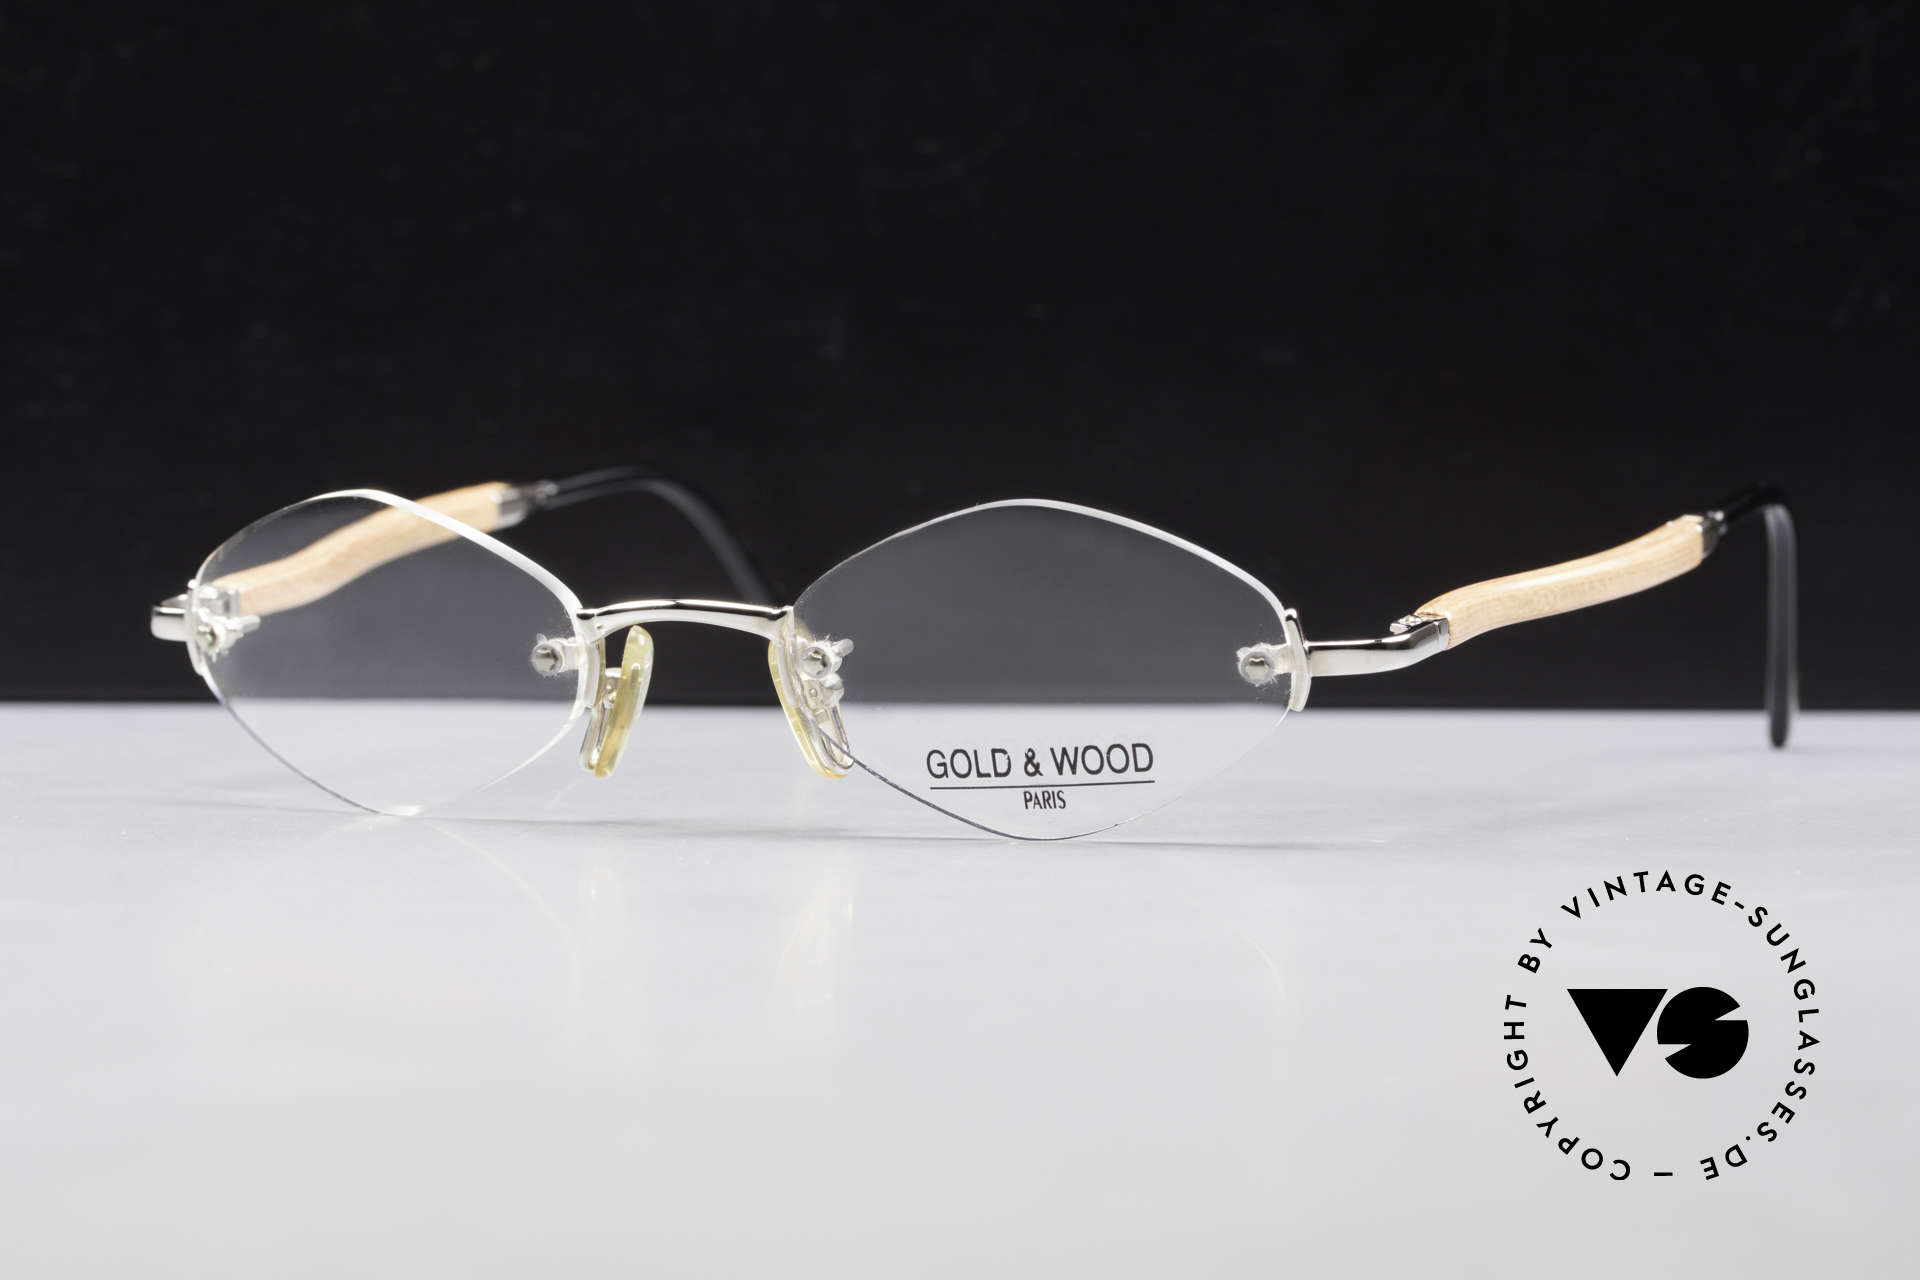 Gold & Wood S02 Luxury Rimless Spectacles, the credo: elegance, timelessness, craftsmanship, Made for Men and Women